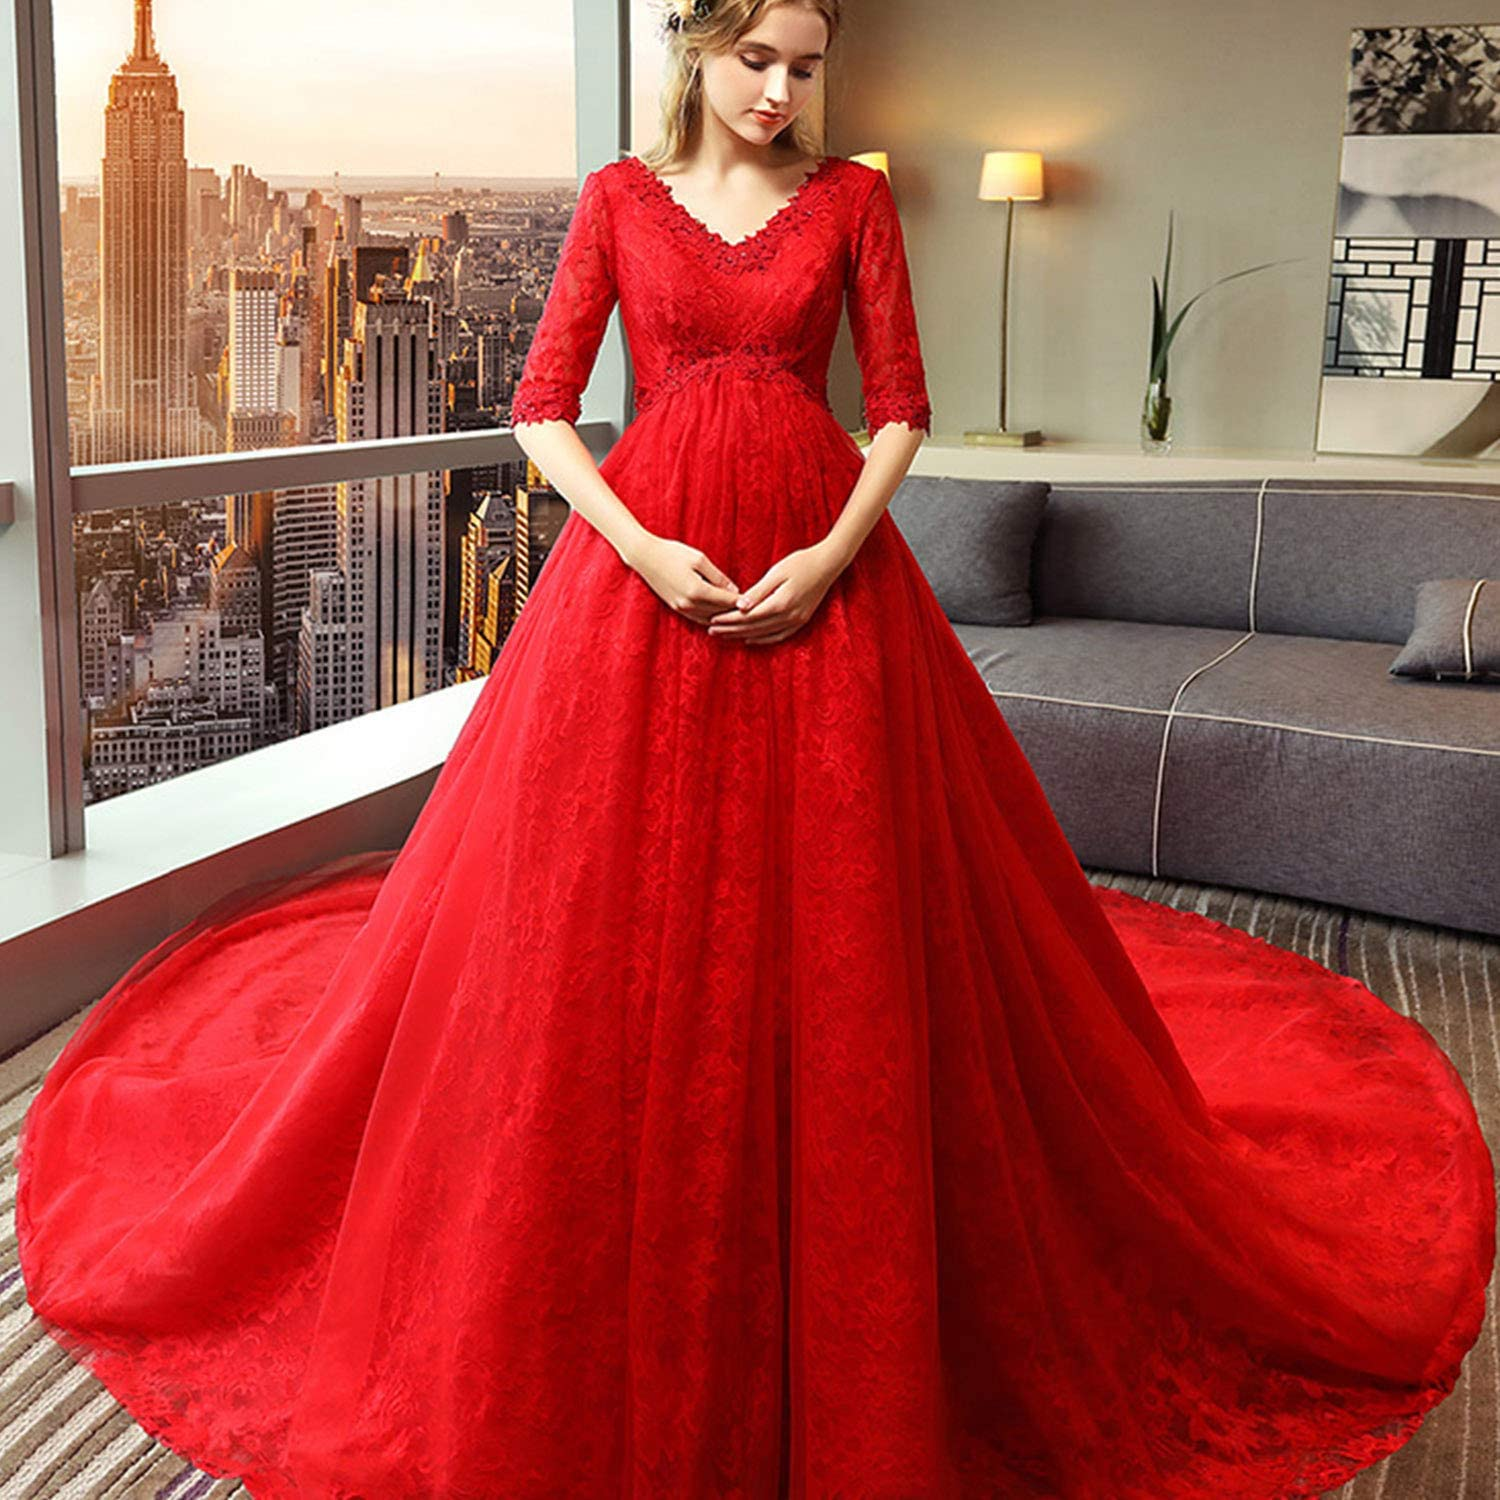 Pregnant Bridal Wedding Dresses Simple Oversized VNeck Long Tailing Women Dresses with Lace Appliques Ideal for Ceremony Evening Party Use